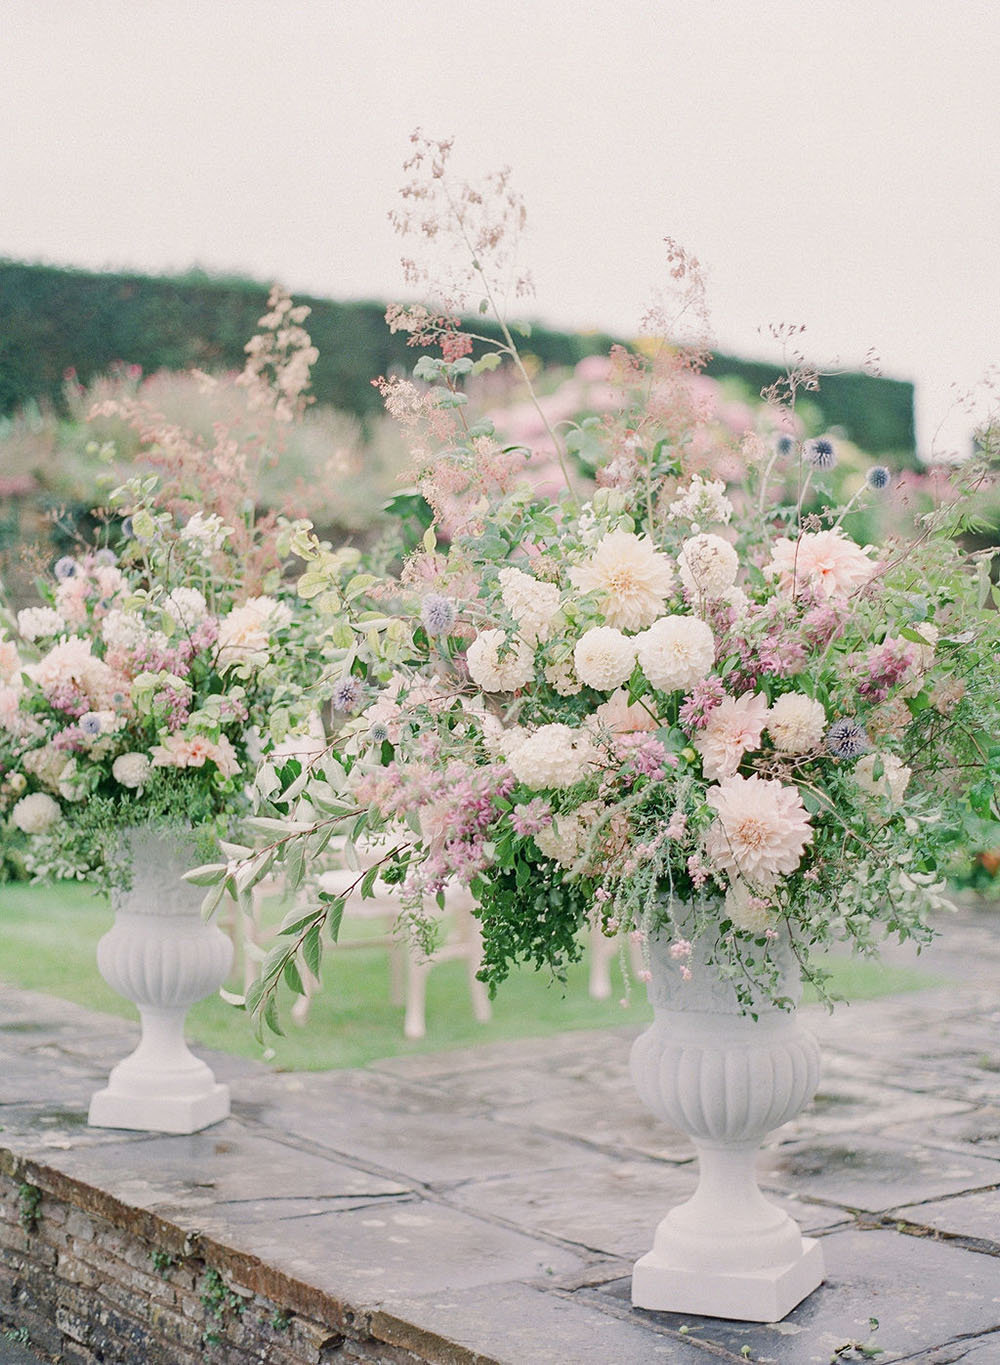 Grand, pastel garden-style floral arrangements for a luxury destination wedding in England at Hedsor House